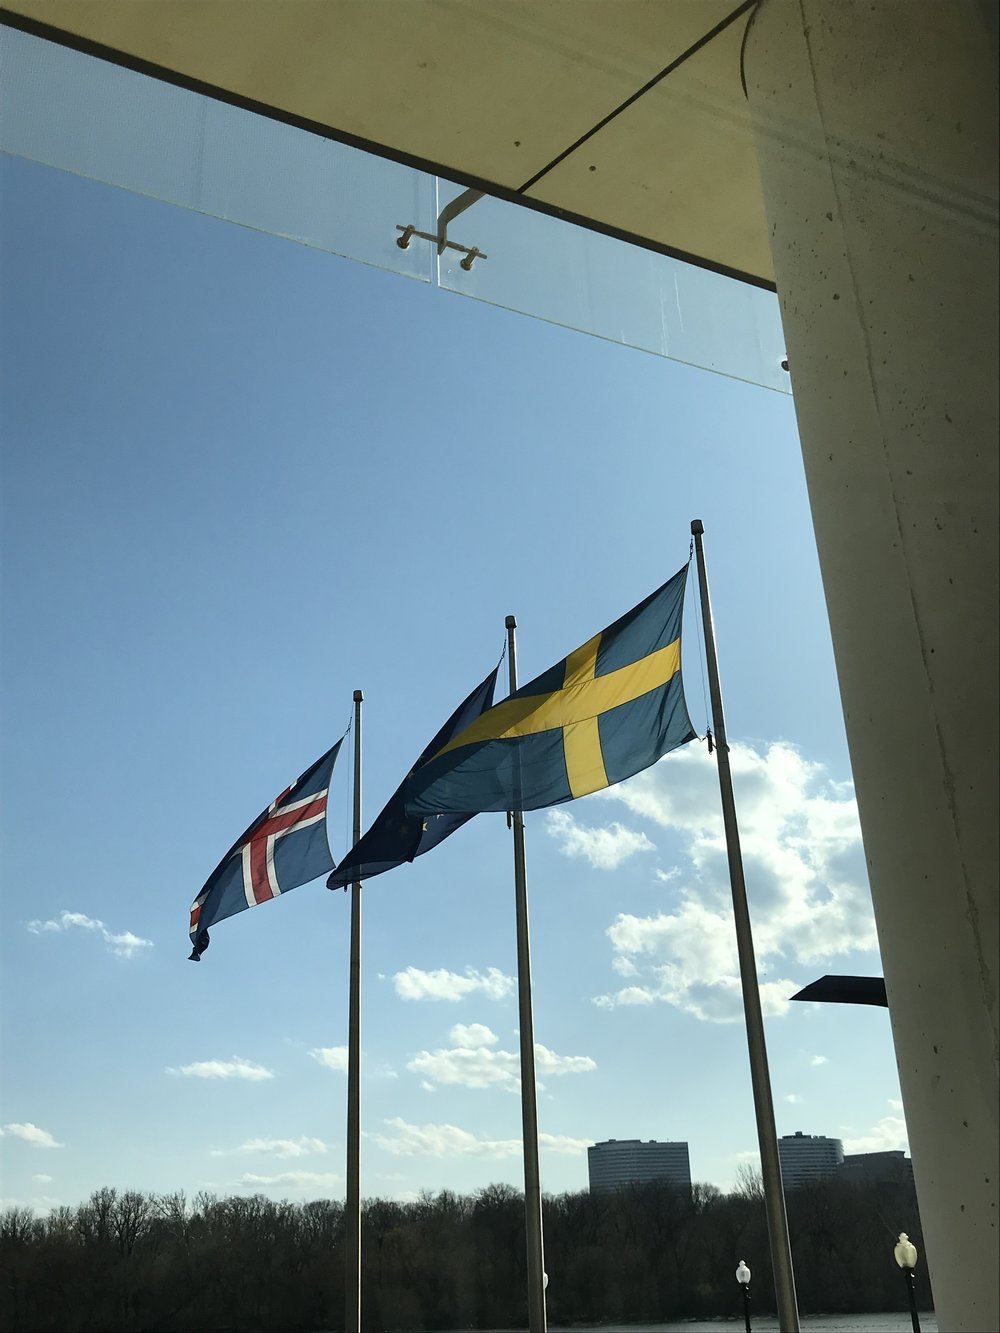 Looking out from the House of Sweden at the flags of Sweden, Iceland, and the EU.